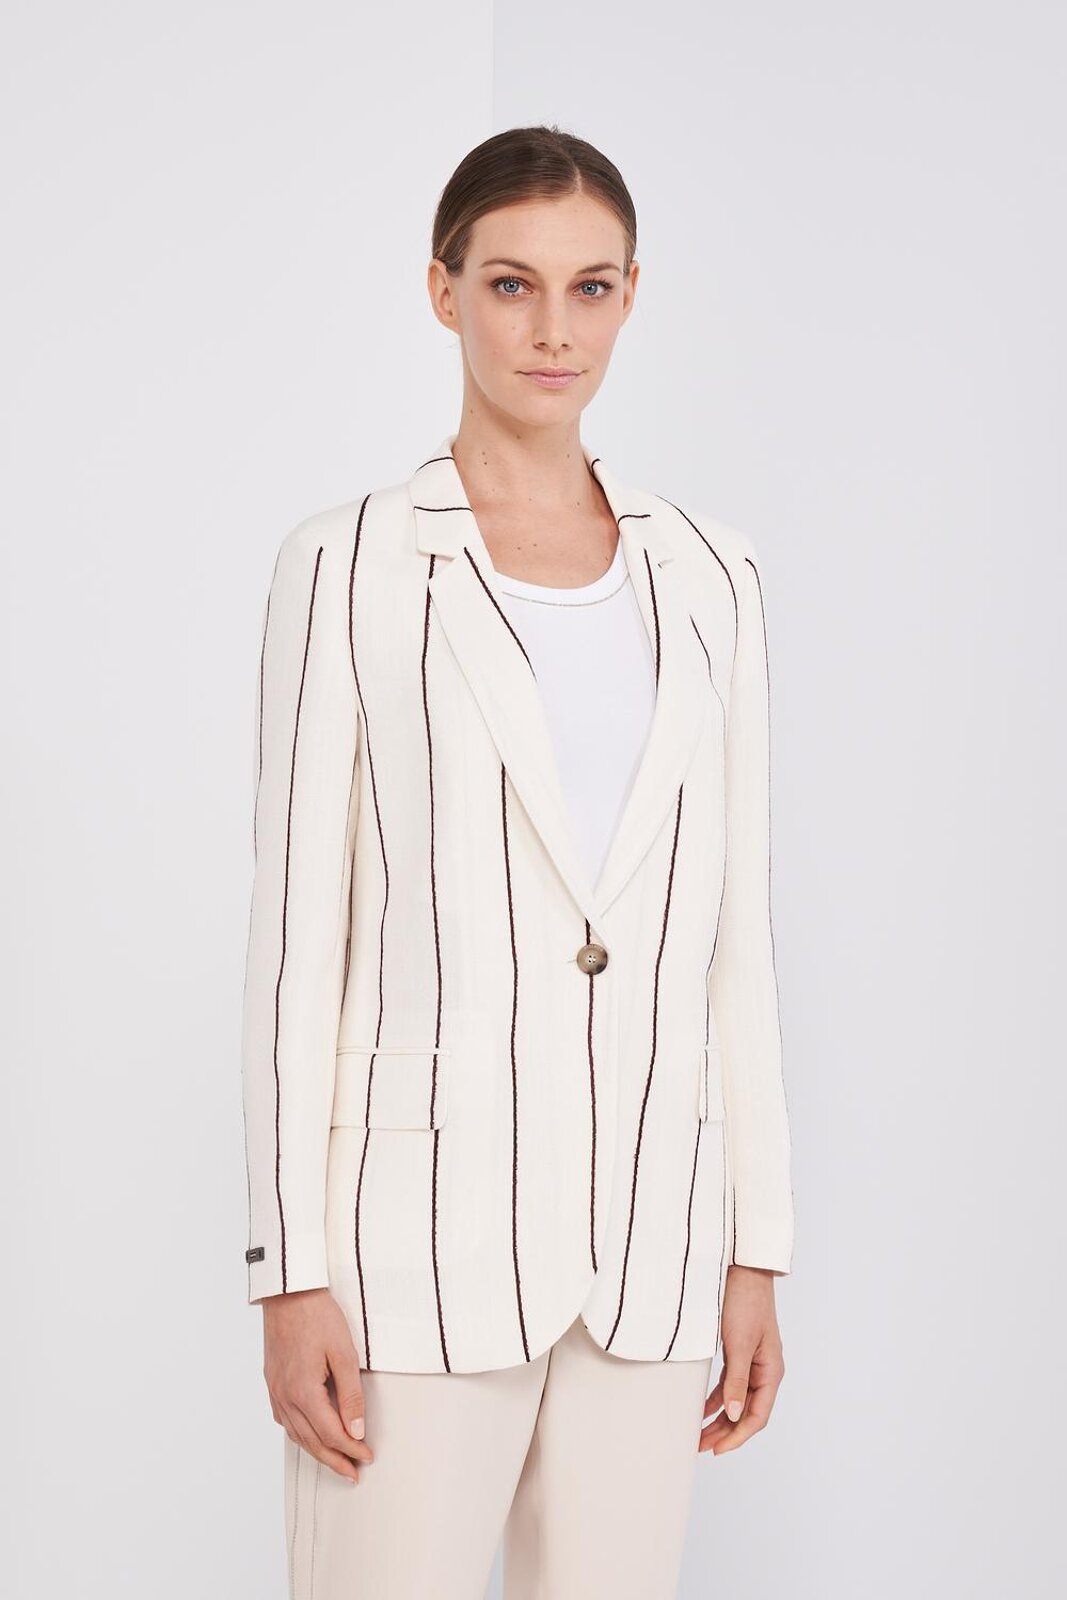 Long Sleeve Blazer Jacket In Soft Striped Linen And Viscose Fabric. One Front Button, Side Pockets, Leather Detail On The Sleeve. Slightly oversized fit. - Peserico